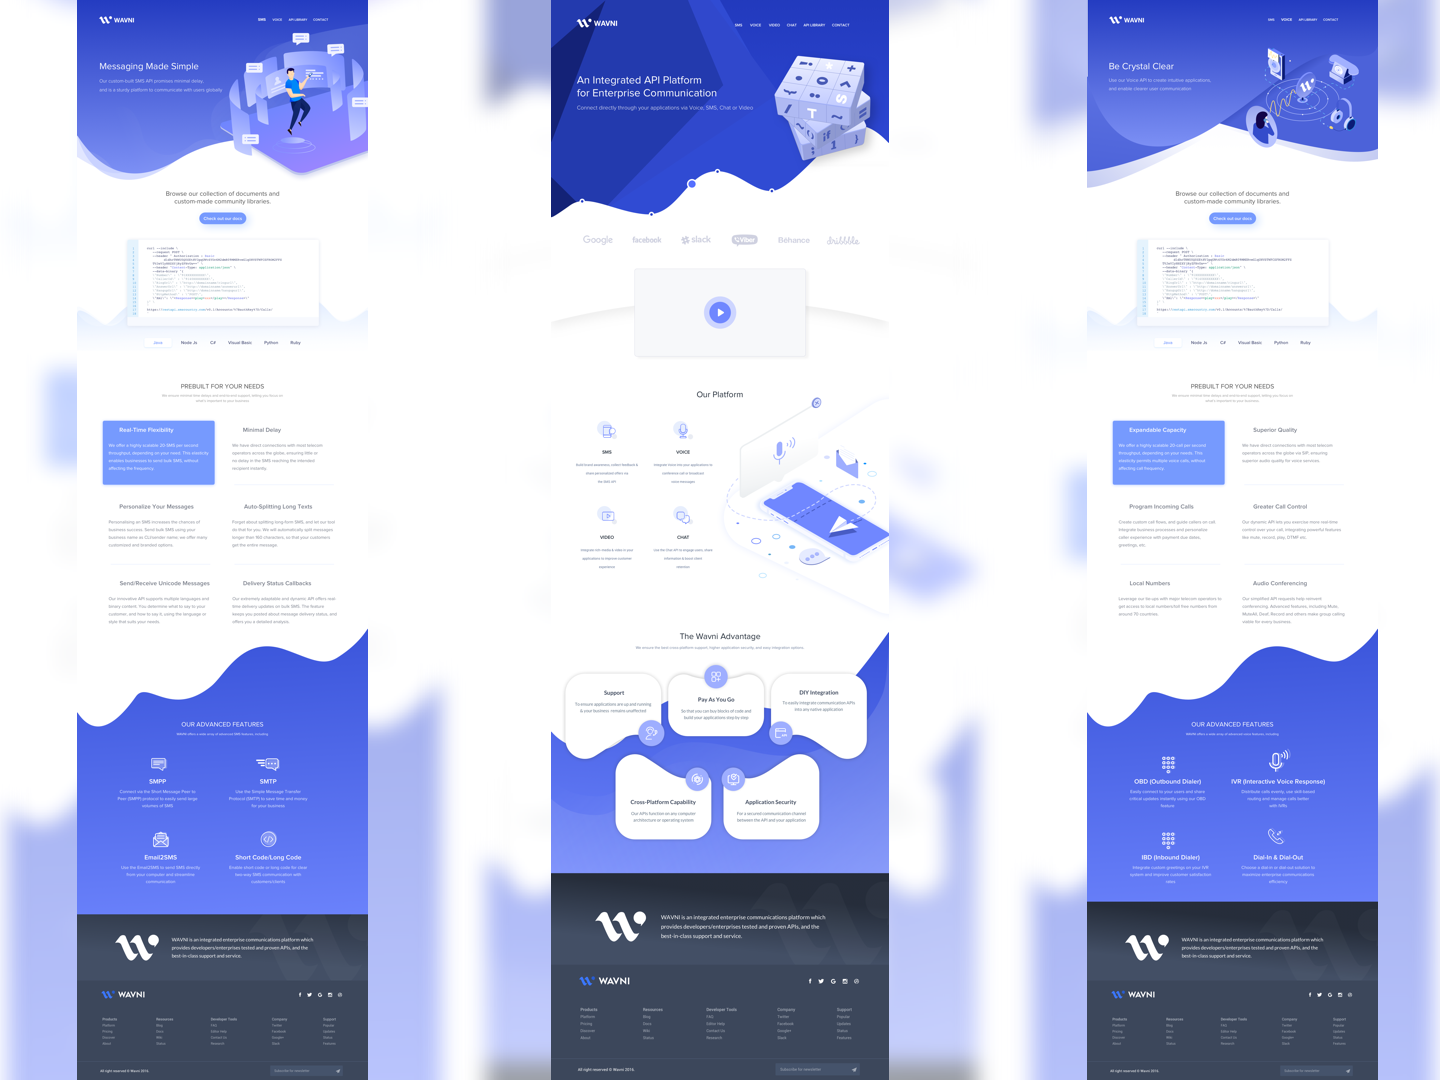 Wavni Web UI mockup Rebound userinterface web vector website template website mockup web mockup wavni